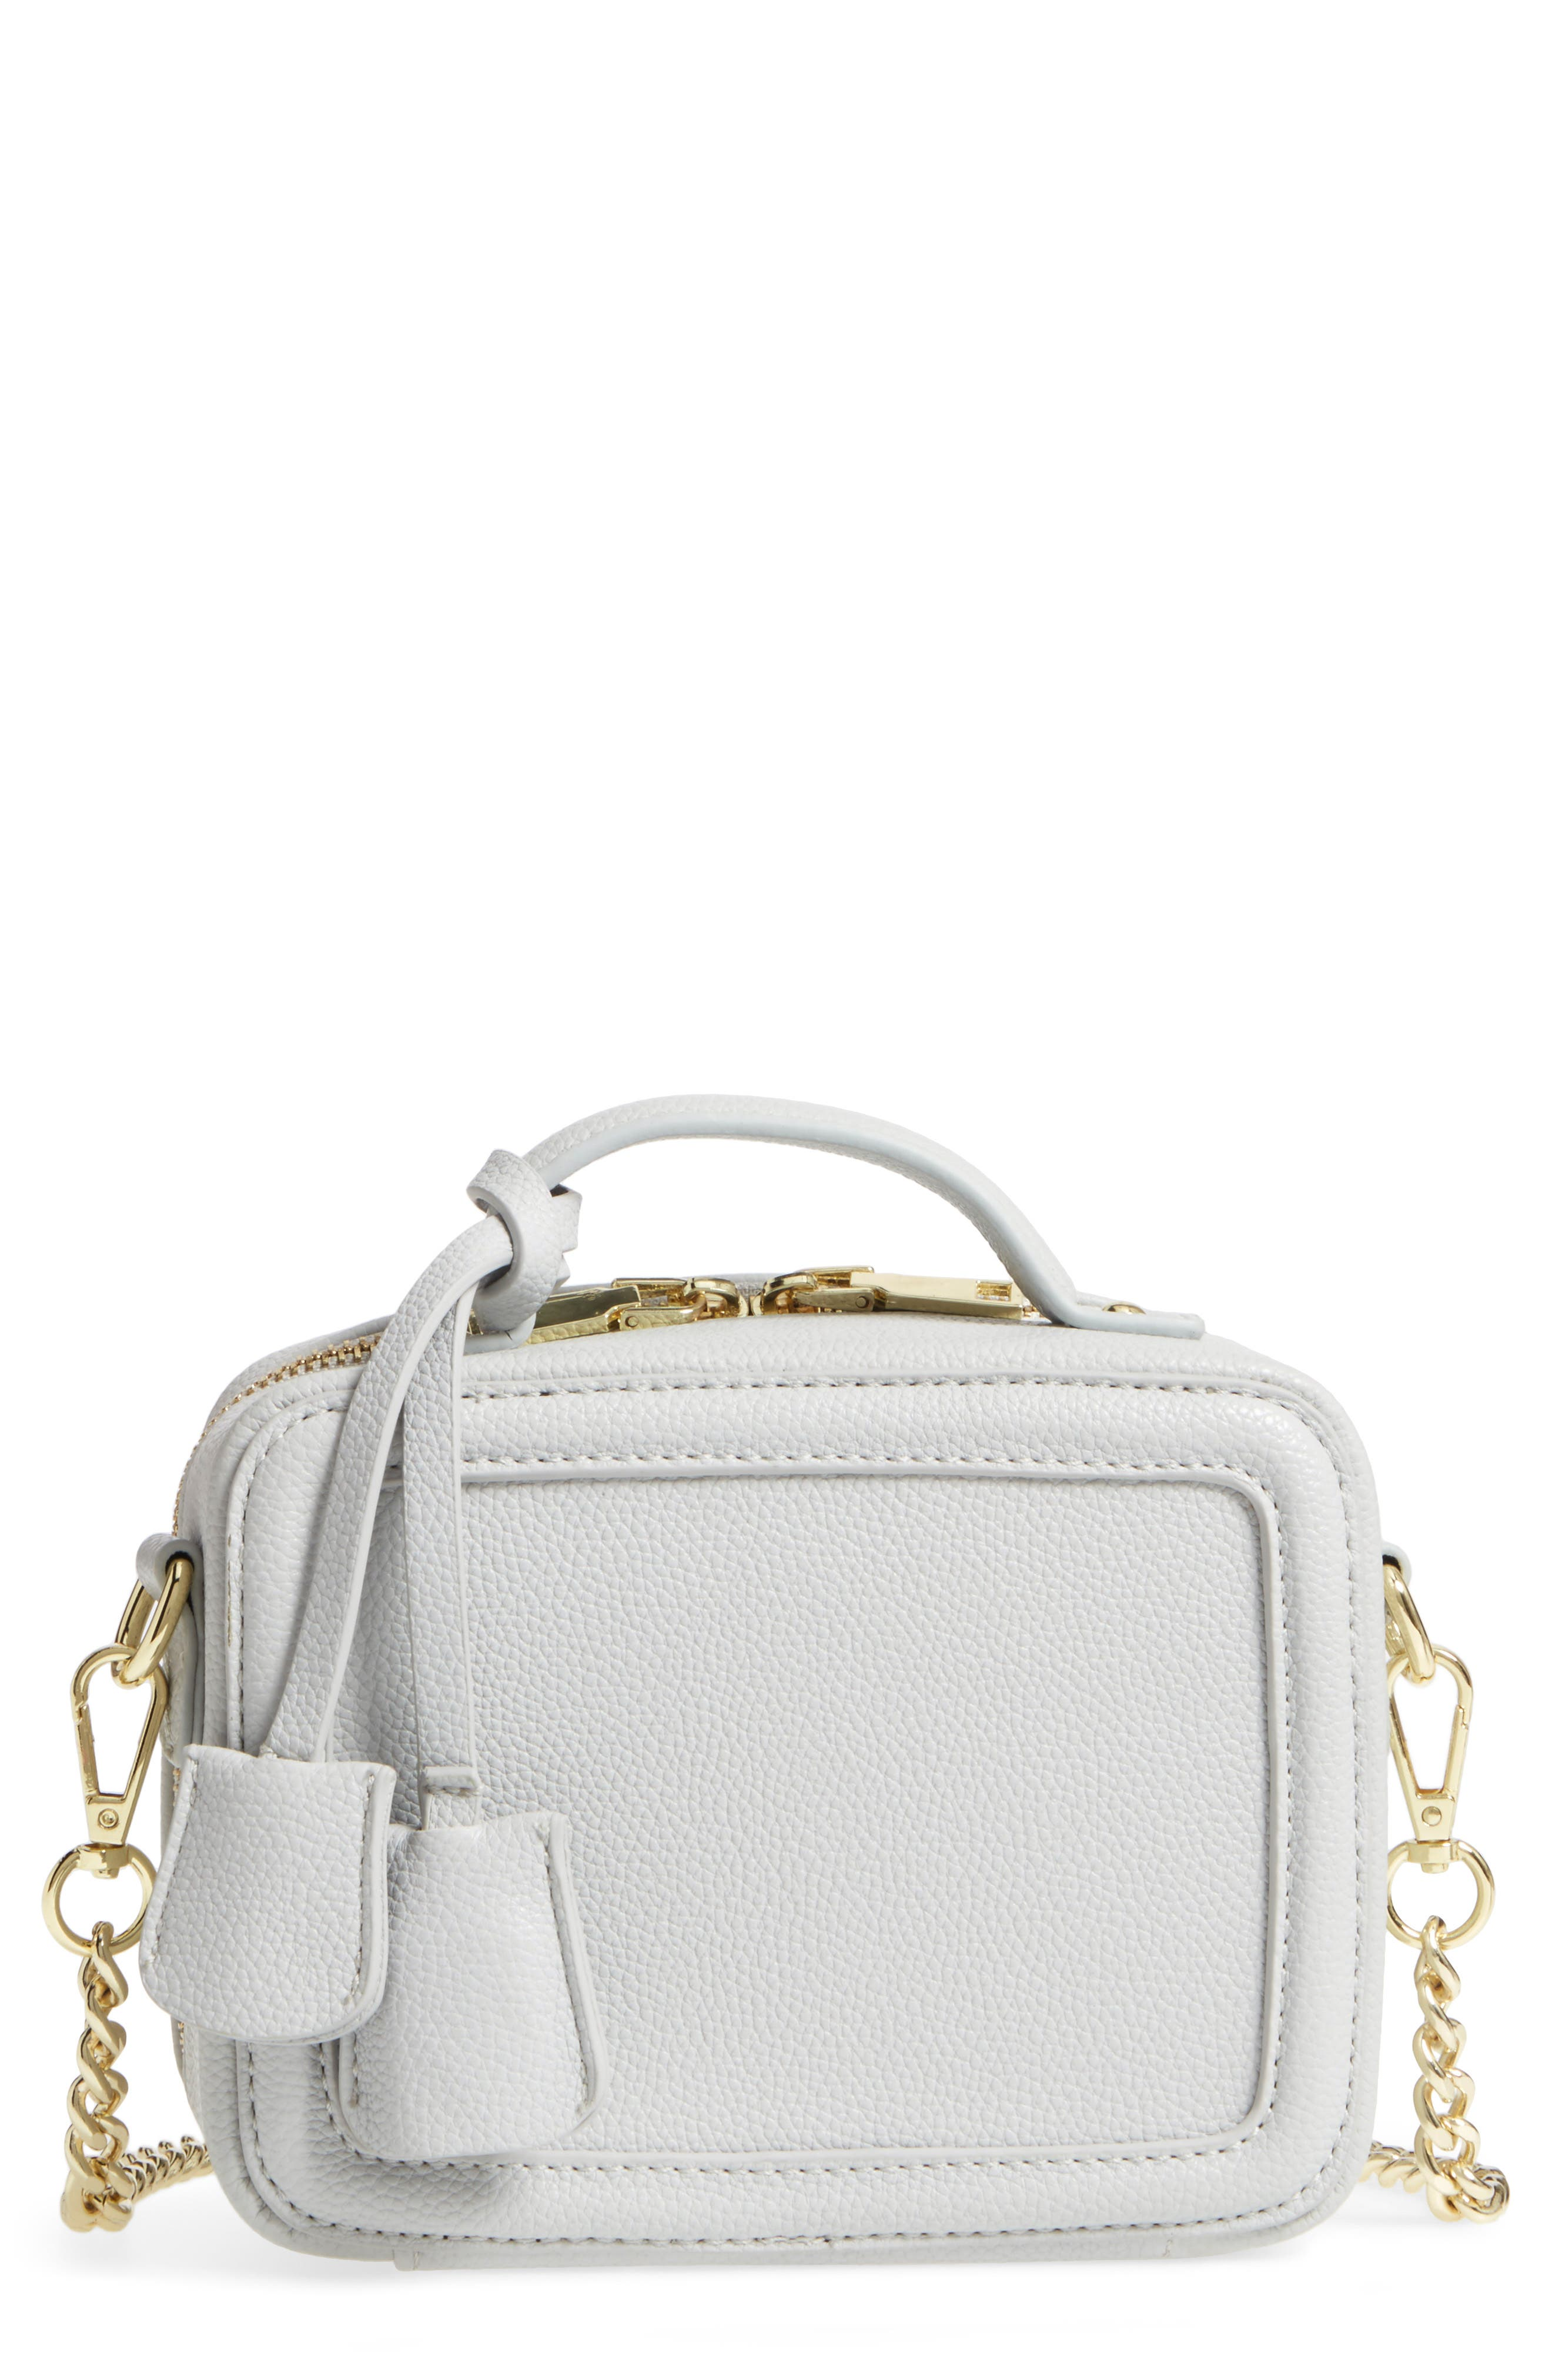 Taylor Faux Leather Crossbody Bag,                         Main,                         color,